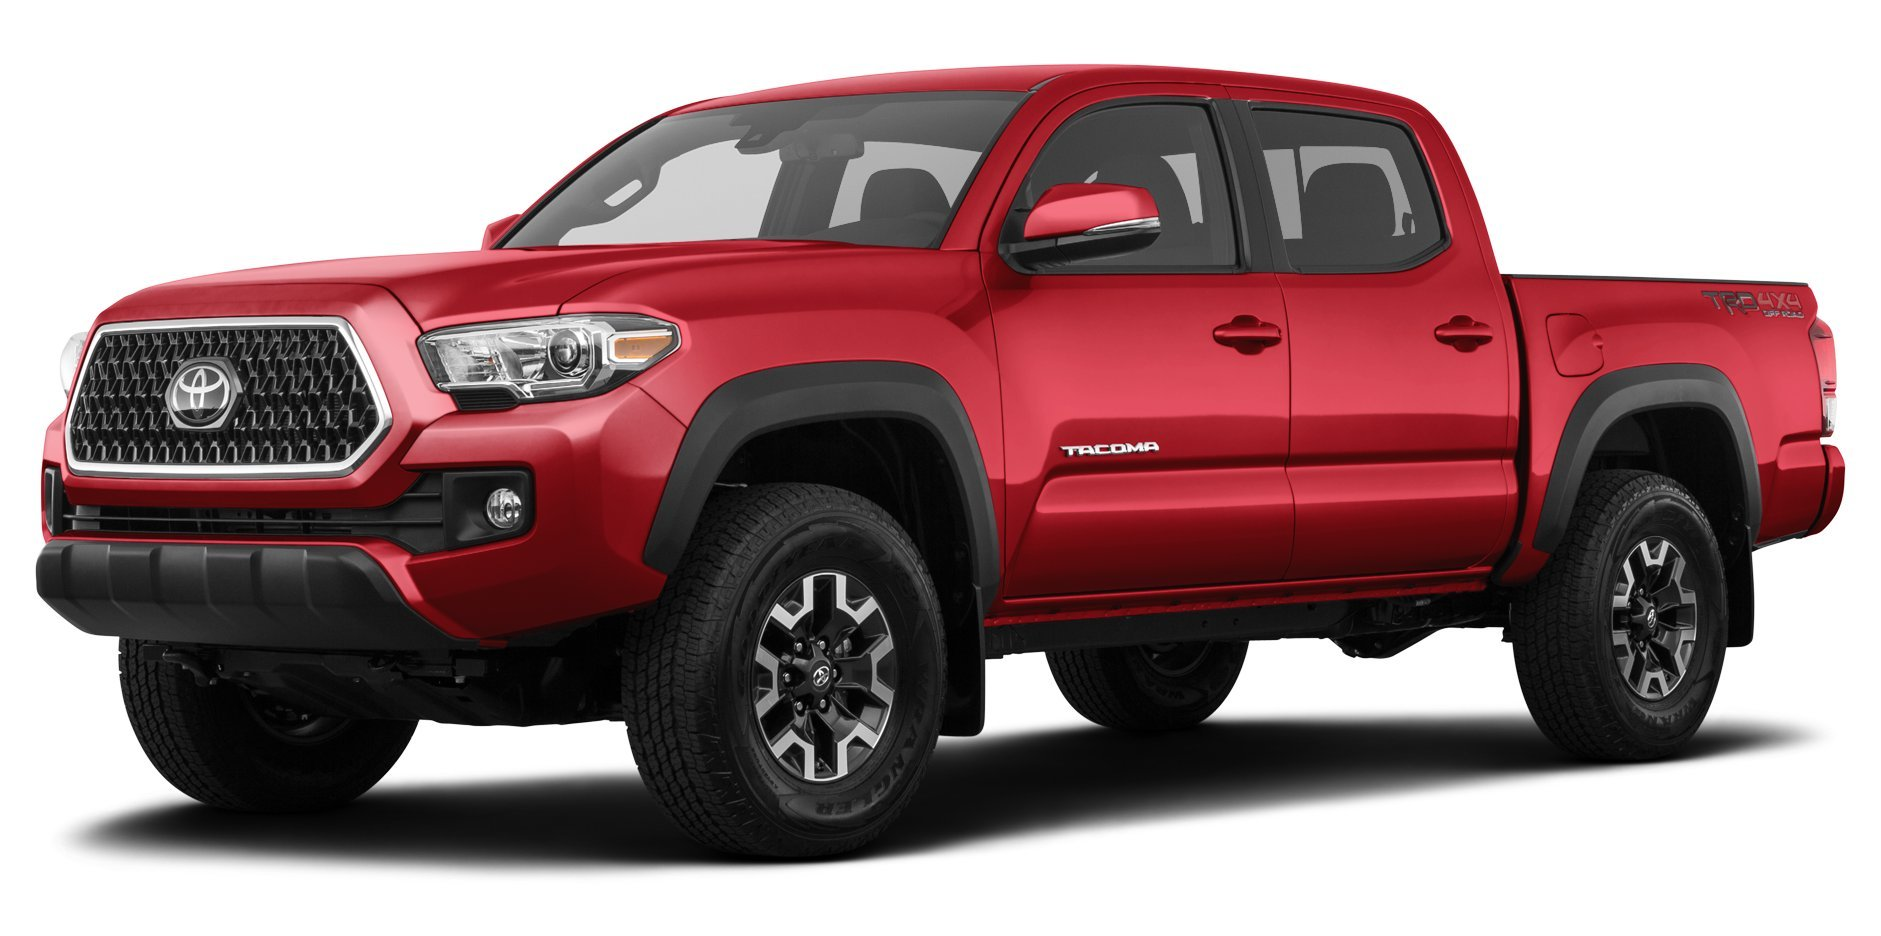 Amazon.com: 2018 Toyota Tacoma Reviews, Images, And Specs